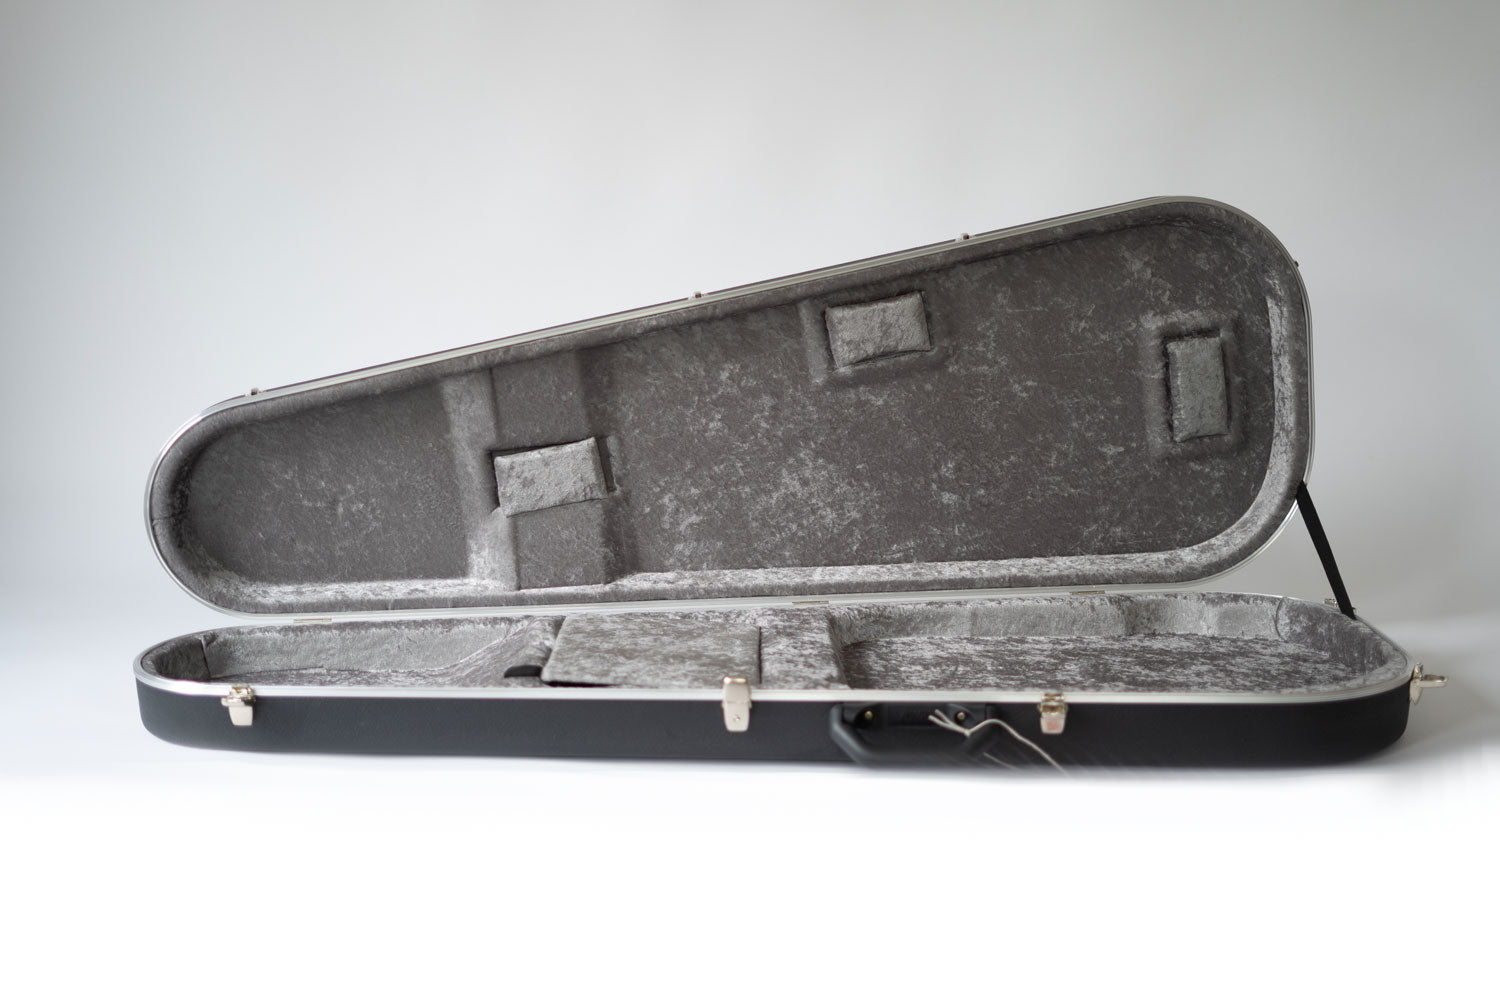 LARGE PEARDROP BASS HARD CASE